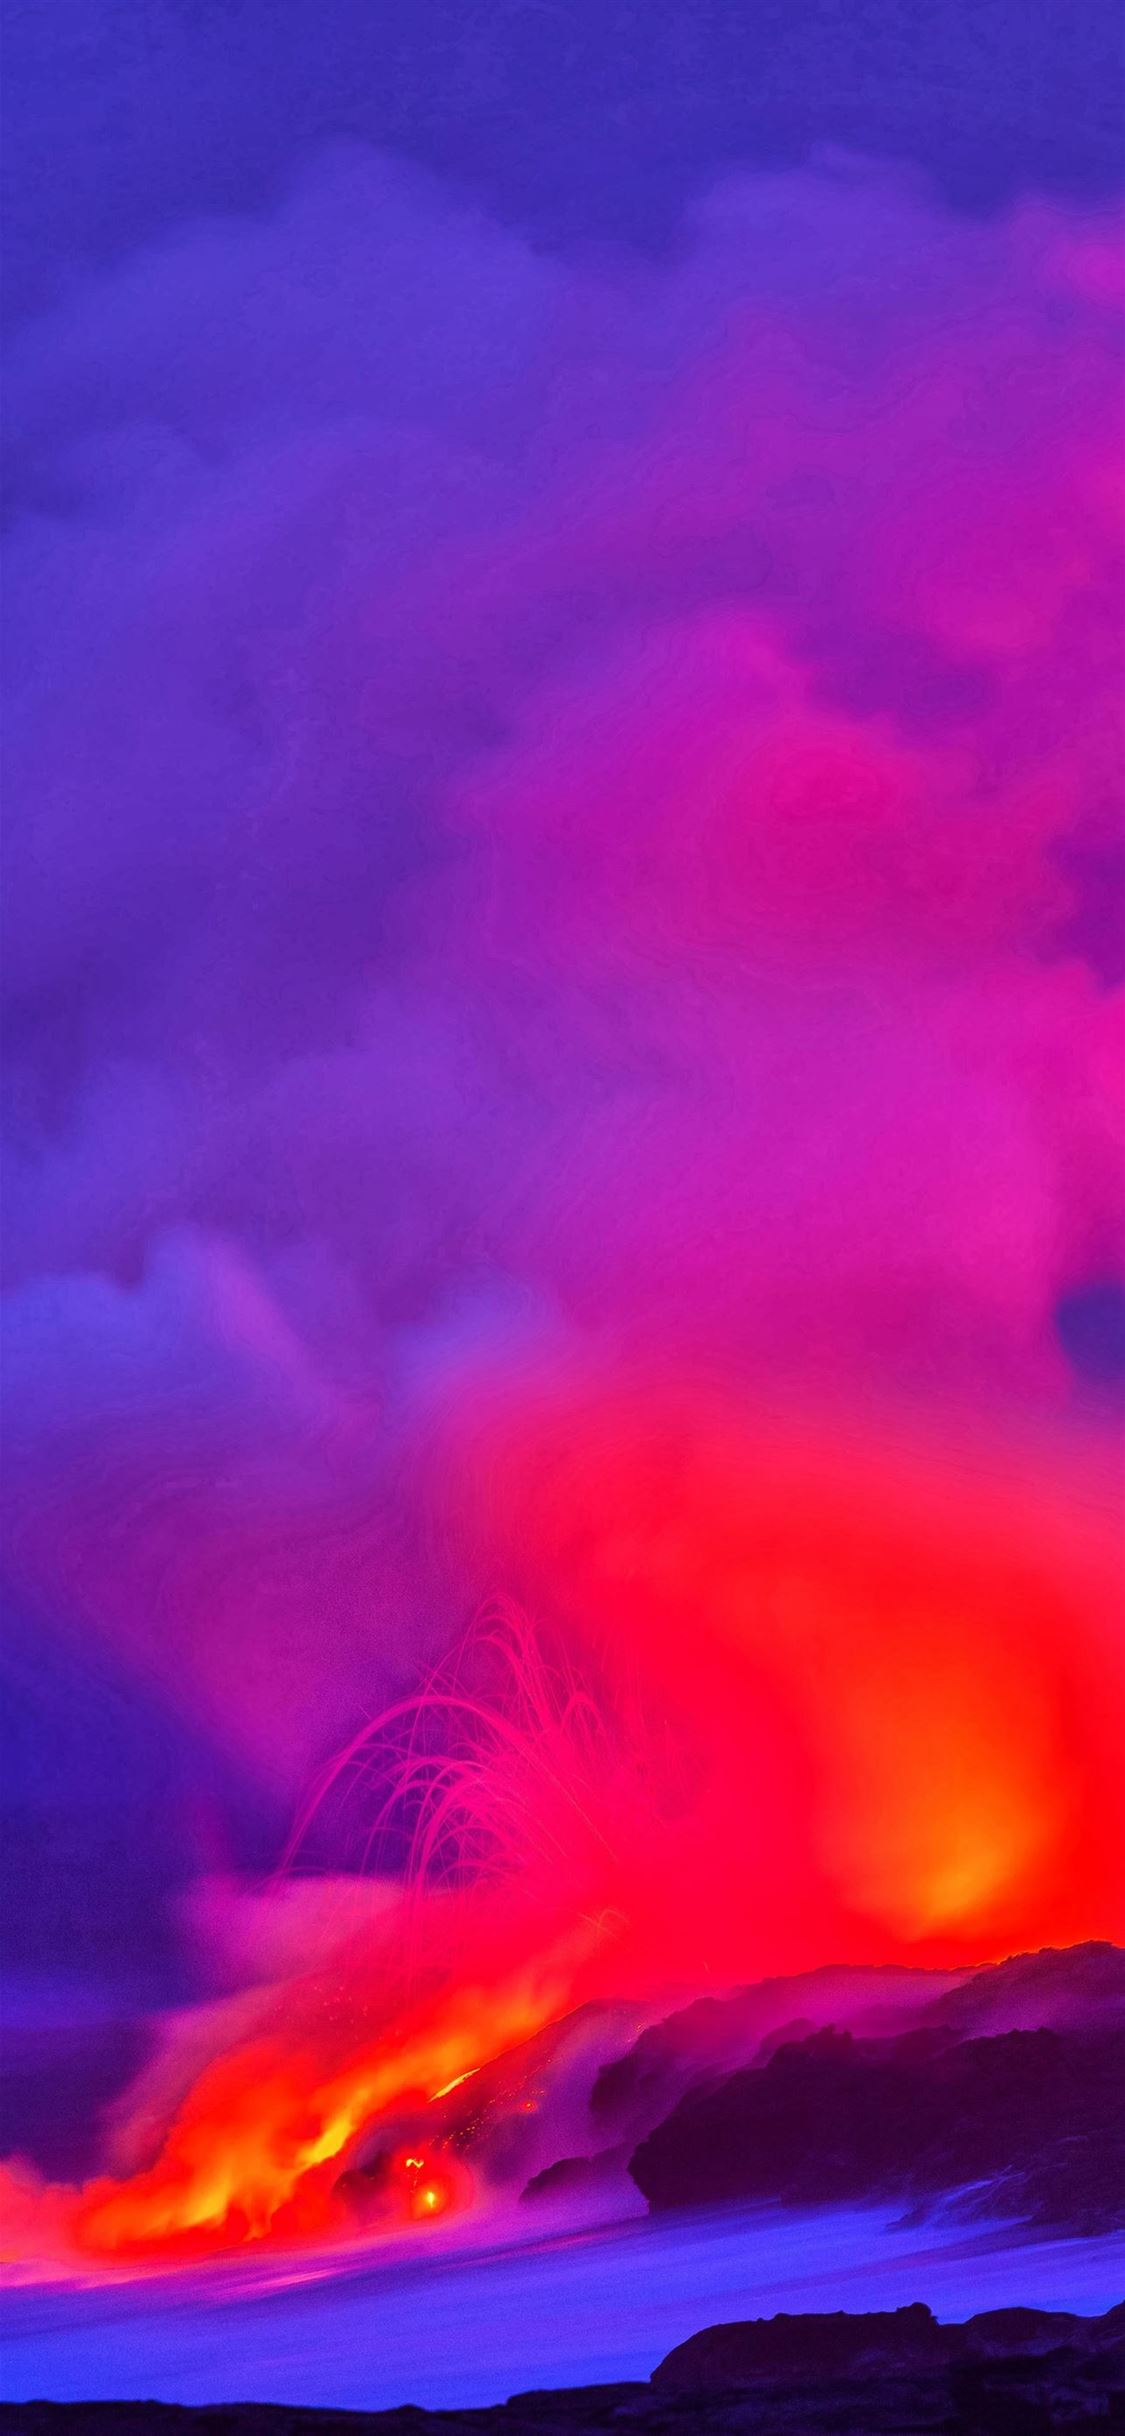 Ultra Hd 4k Hawaii Volcano Sparks Samsung Galaxy A Iphone 11 Wallpapers Free Download